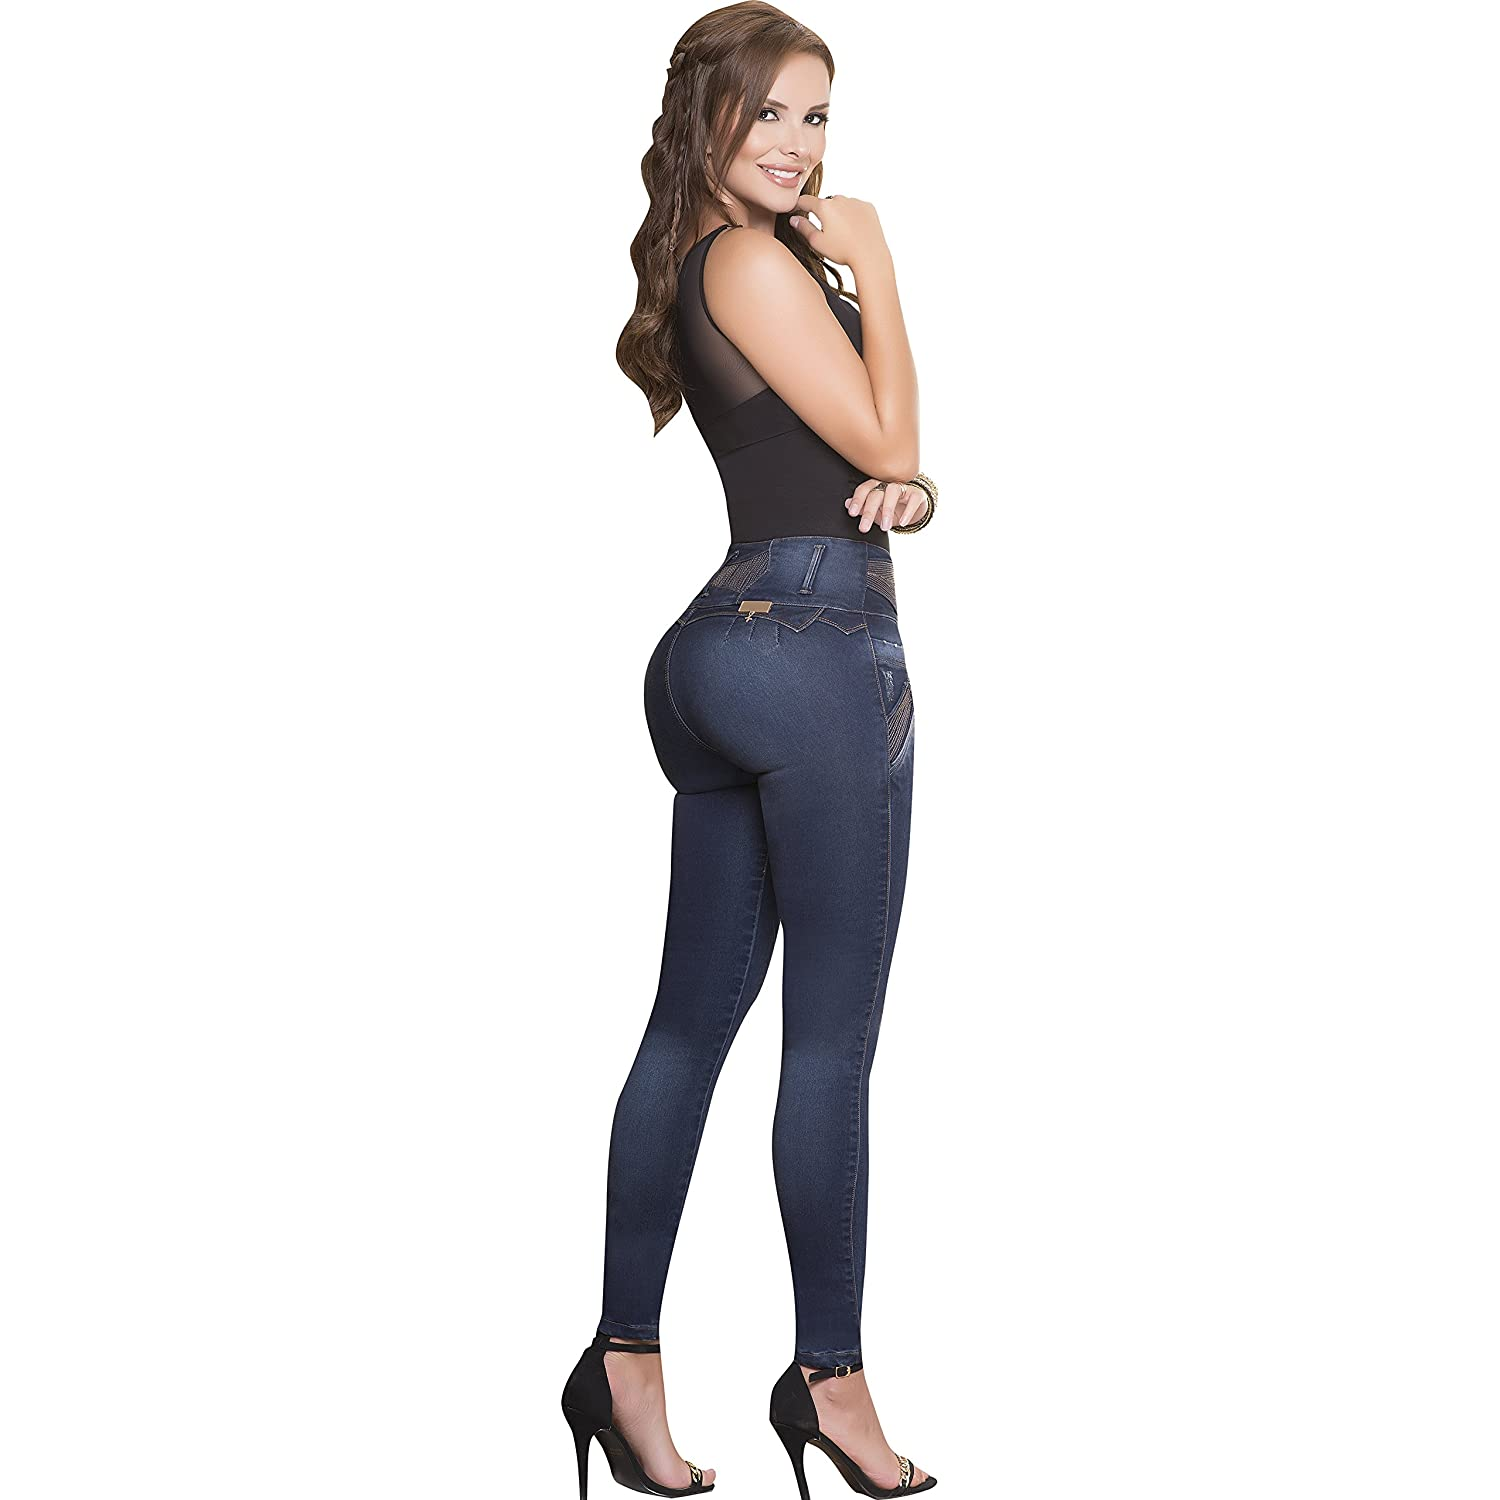 d52b0c6f2c4 Aranza Women Jeans Butt Lifting Colombian Stretch Lifter High Pants  Pantalon Mujer Cintura at Amazon Women s Jeans store